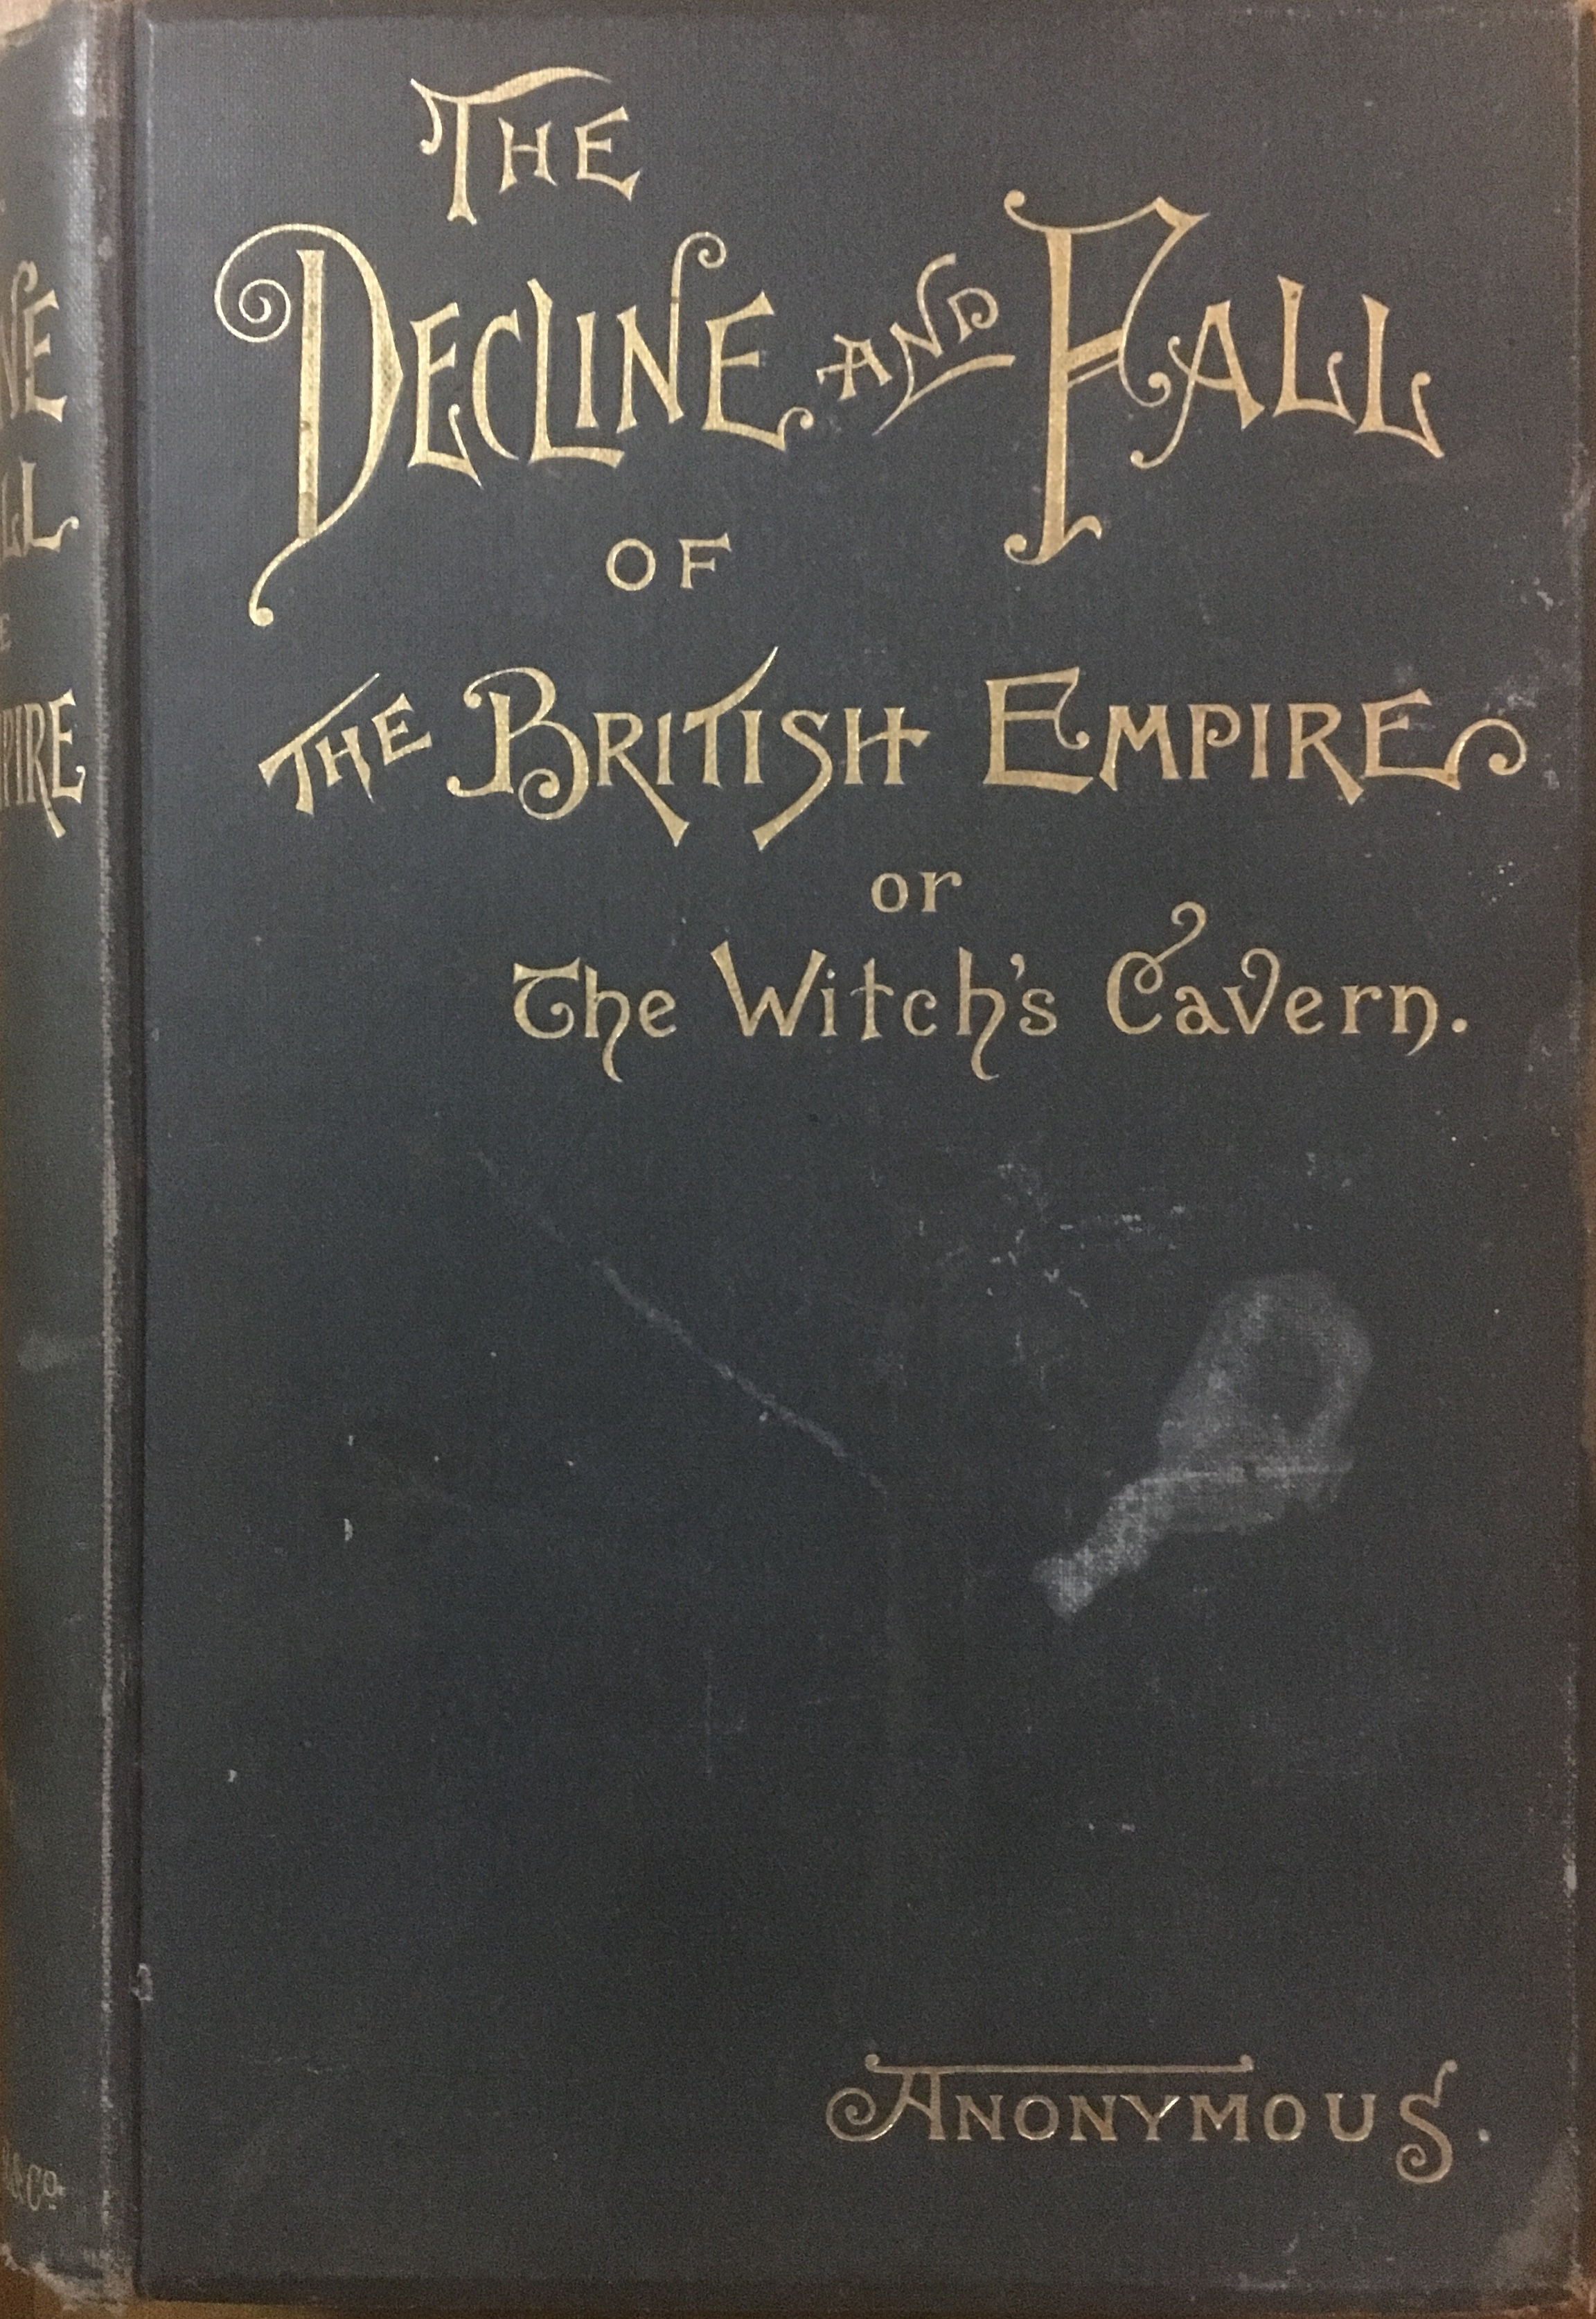 The Decline and Fall of the British Empire; or, The Witch's Cavern